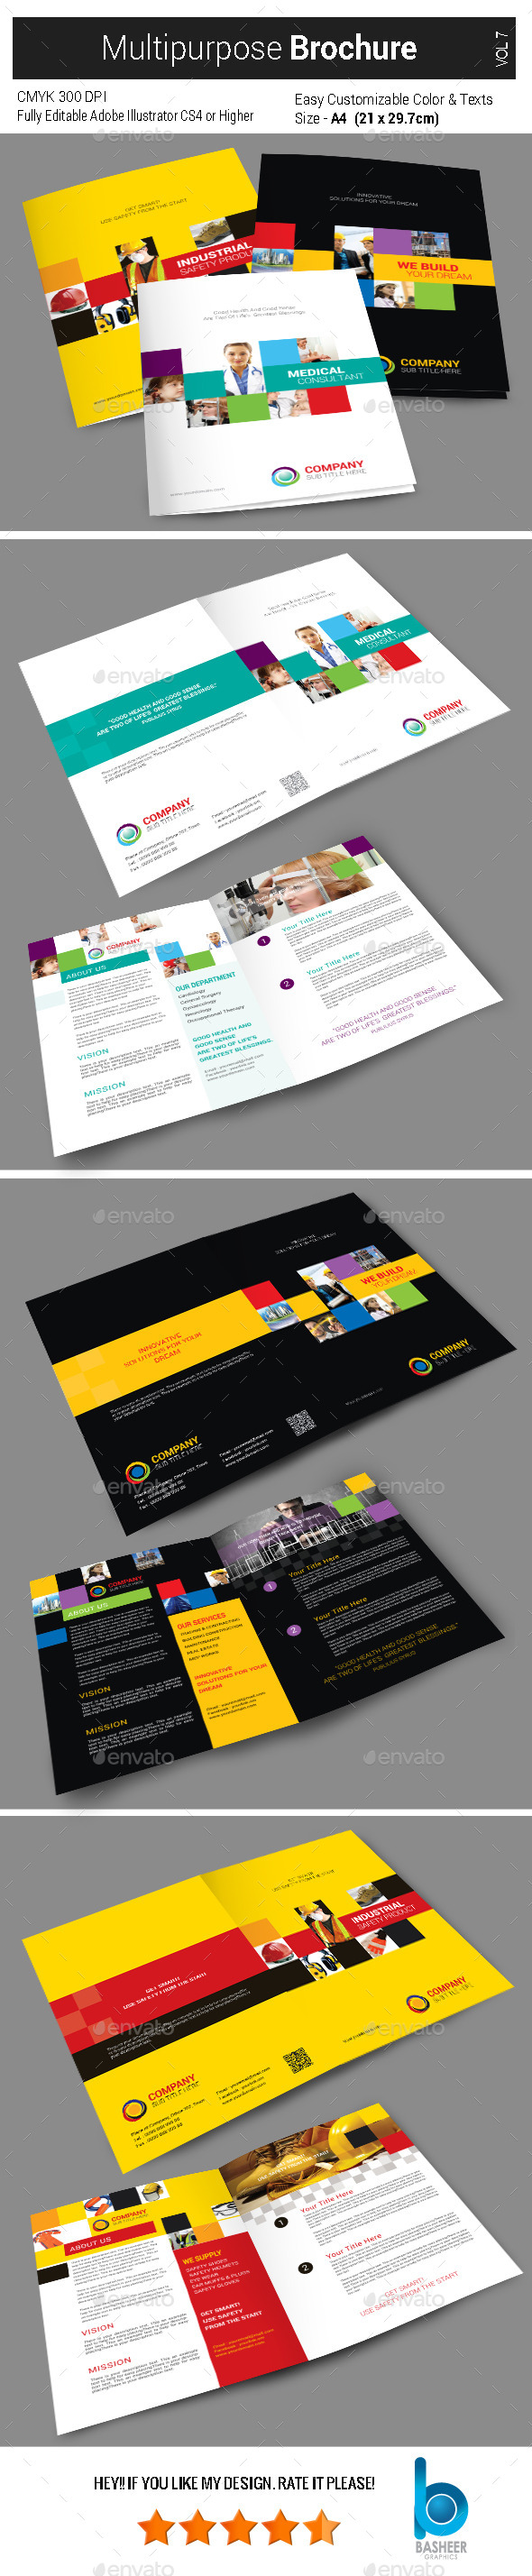 GraphicRiver Multi Purpose Brochure 4 Pages Vol7 9365760